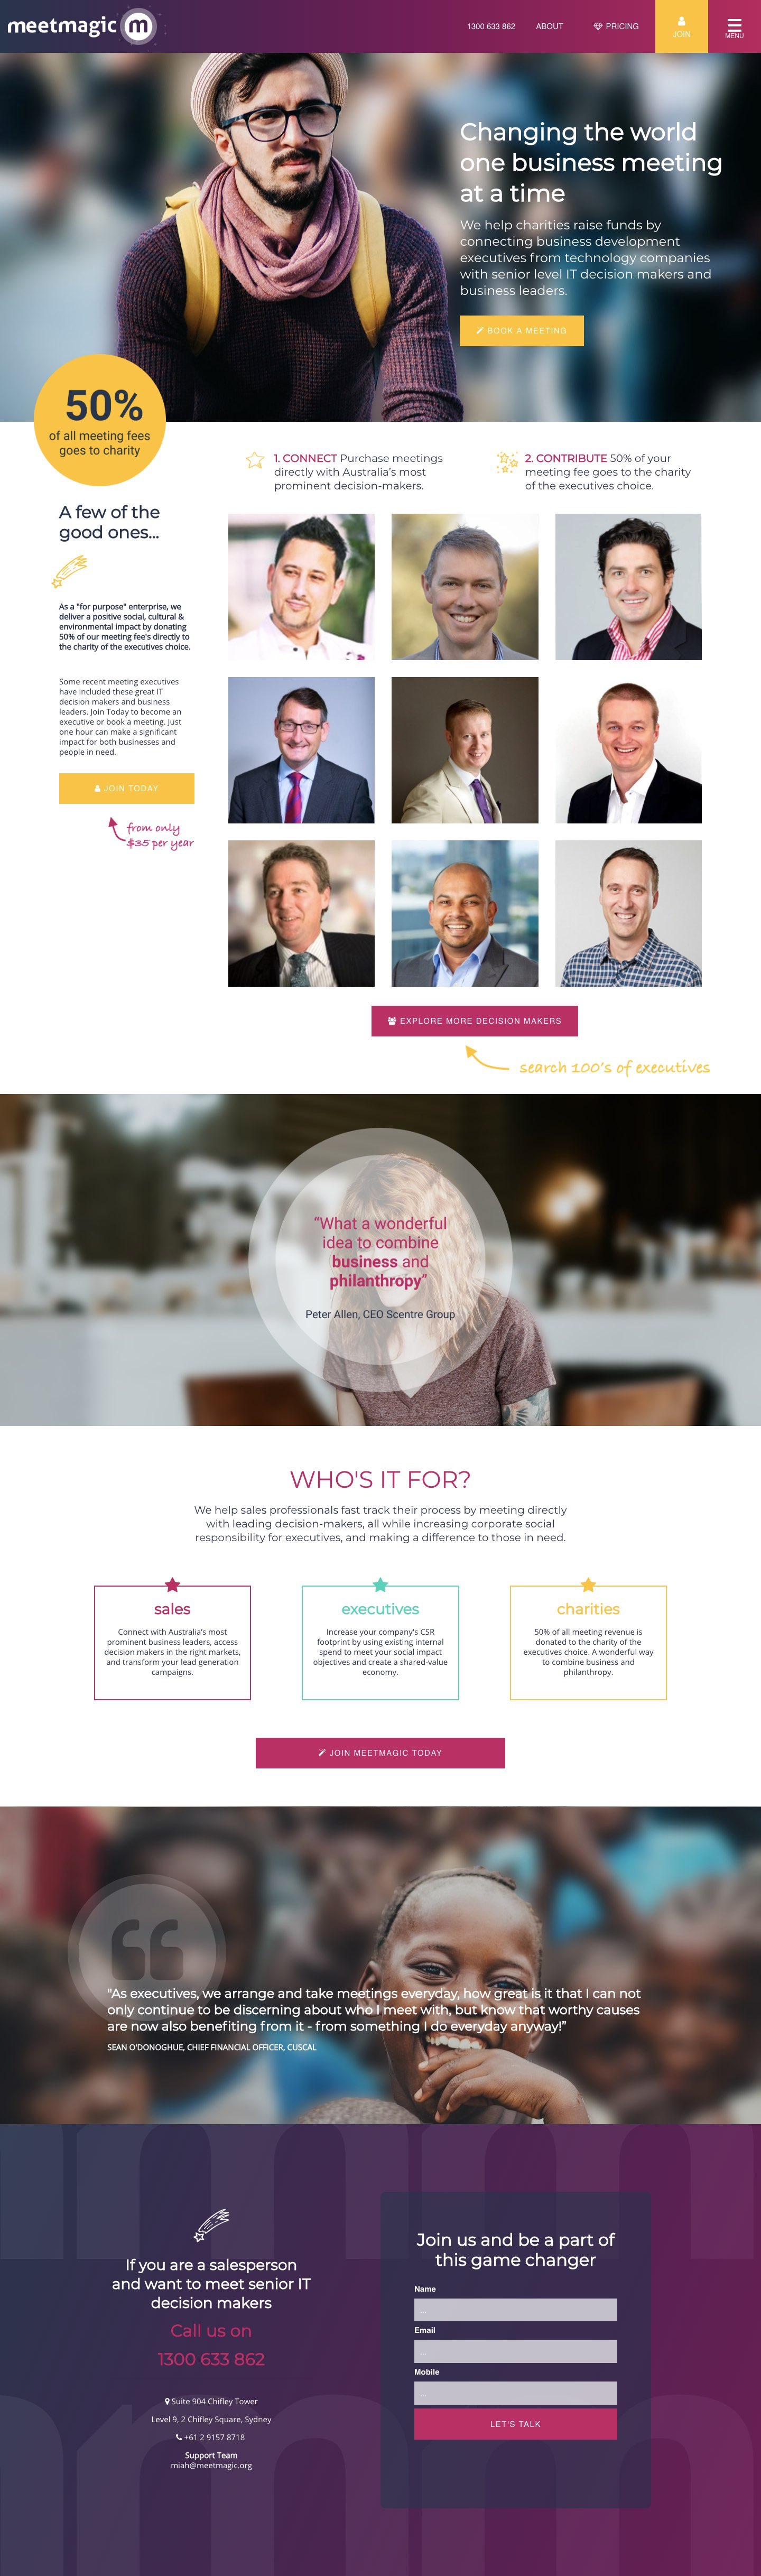 meetmagic full page website design